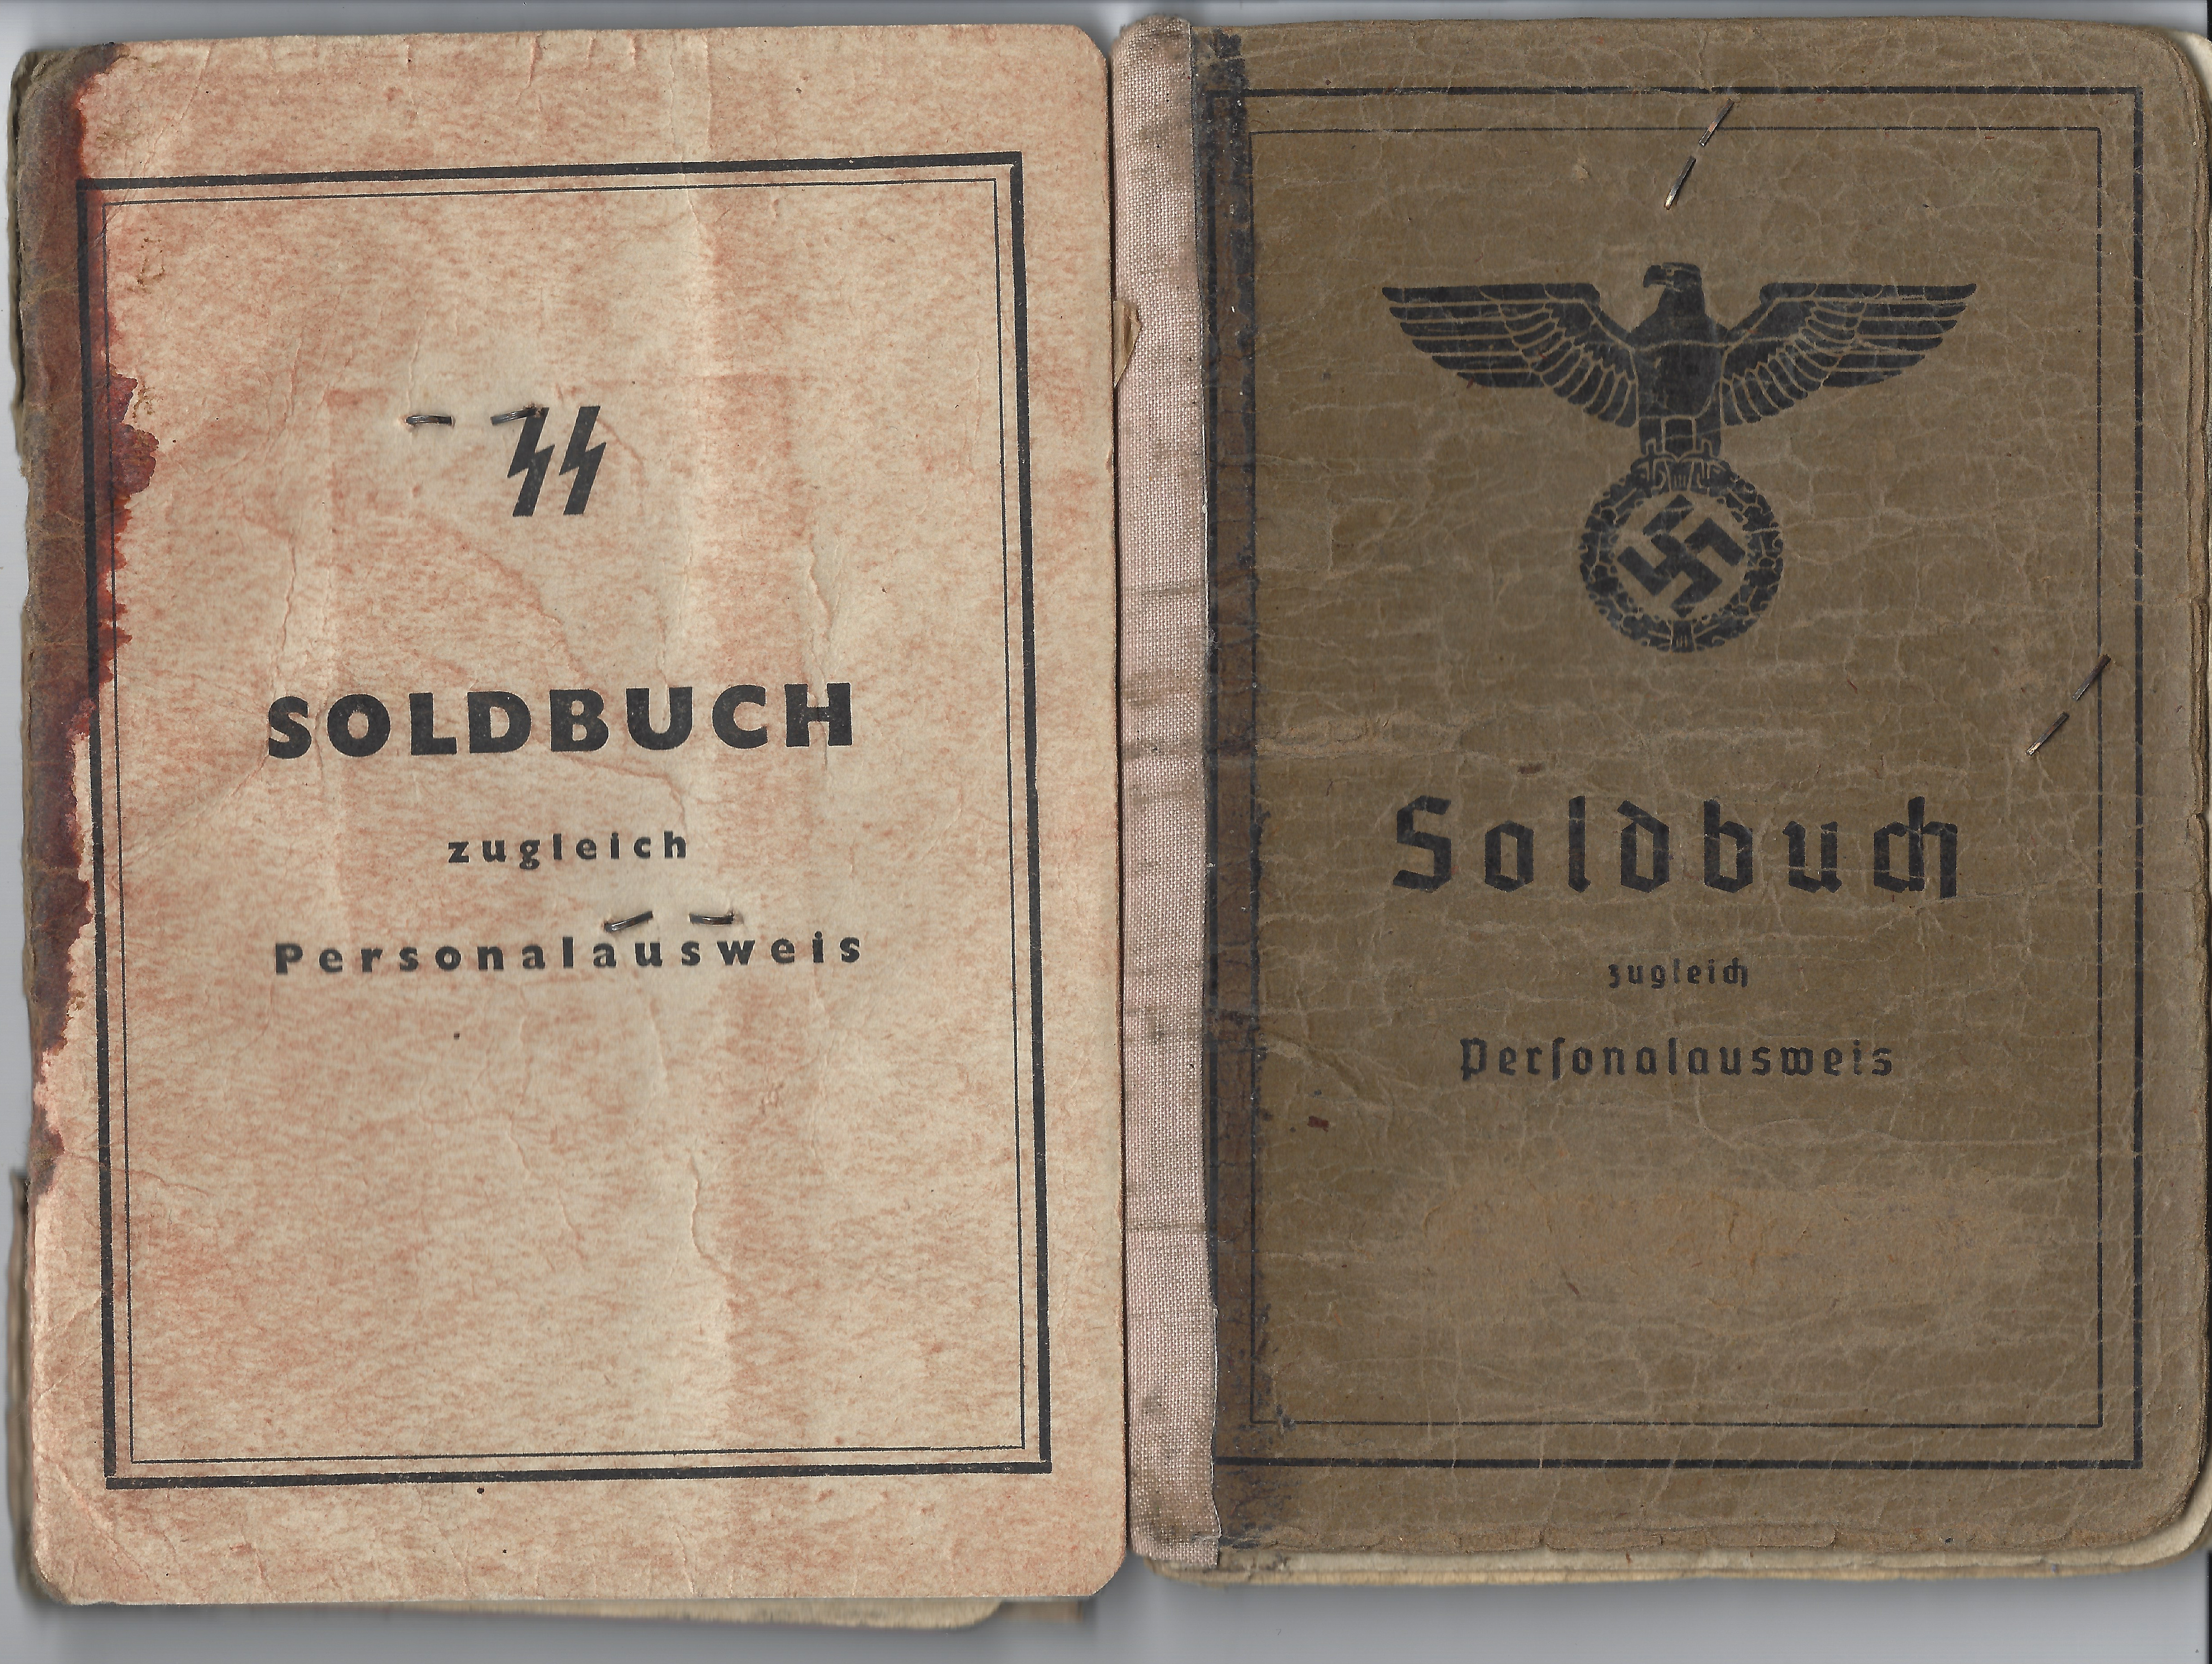 SS Soldbuch and a Wehrmacht Soldbuch, with details written on the cover